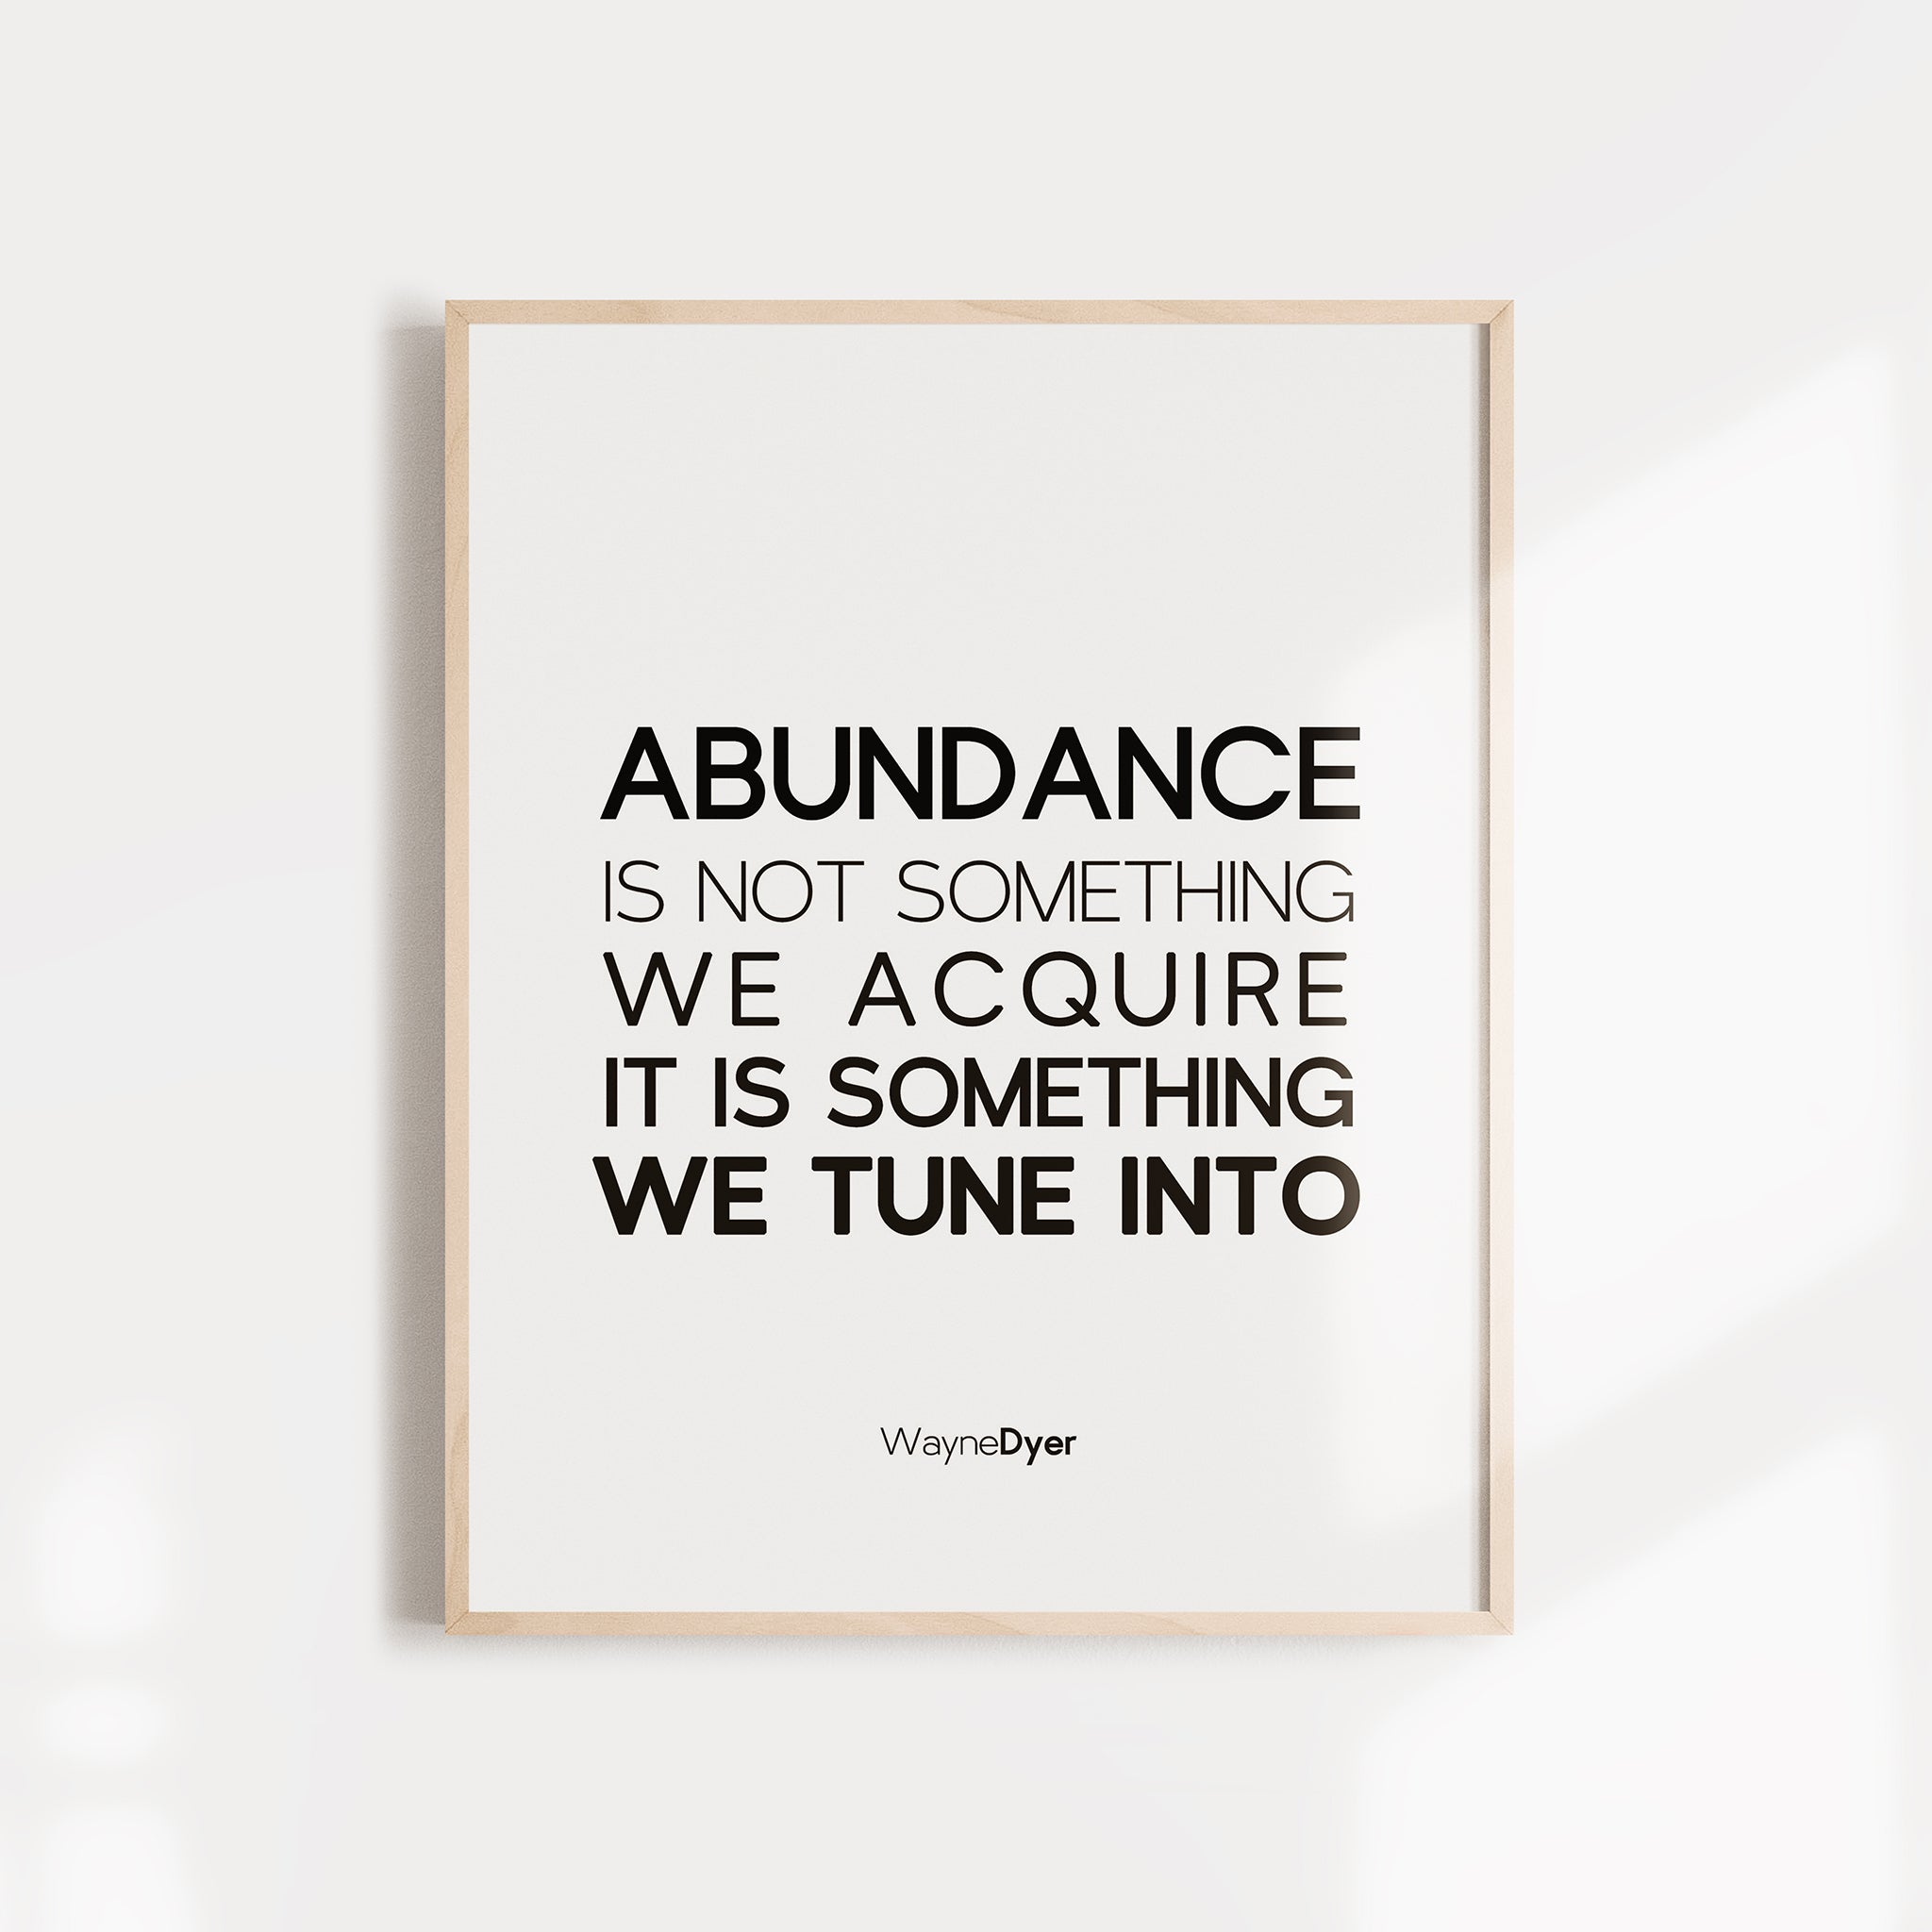 Abundance isn't something we acquire quote, Wayne Dyer. Abundance quote wall art.